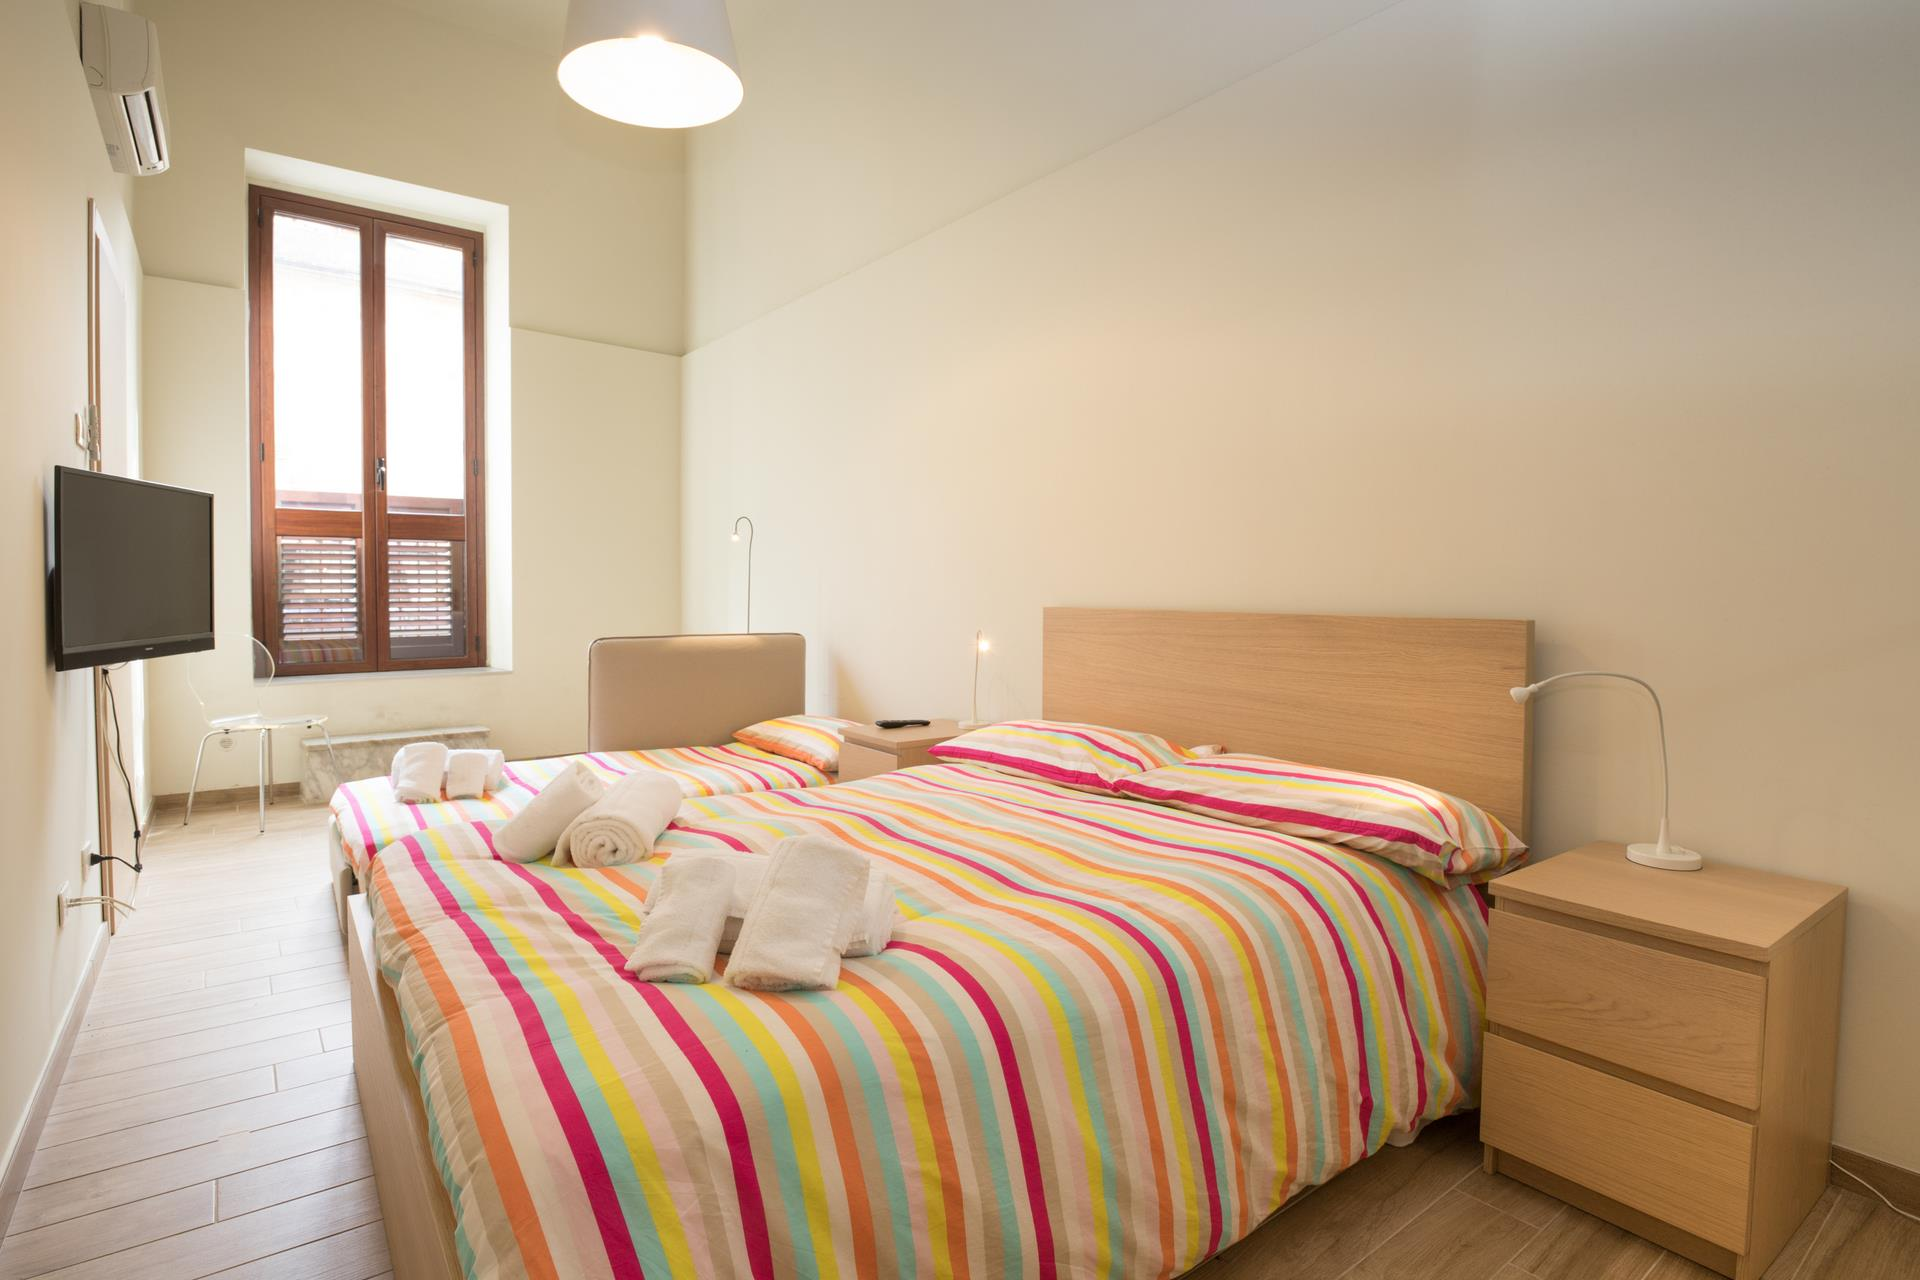 Apartment Apt E - Wellness House Galilei 9 sleeps photo 18685050